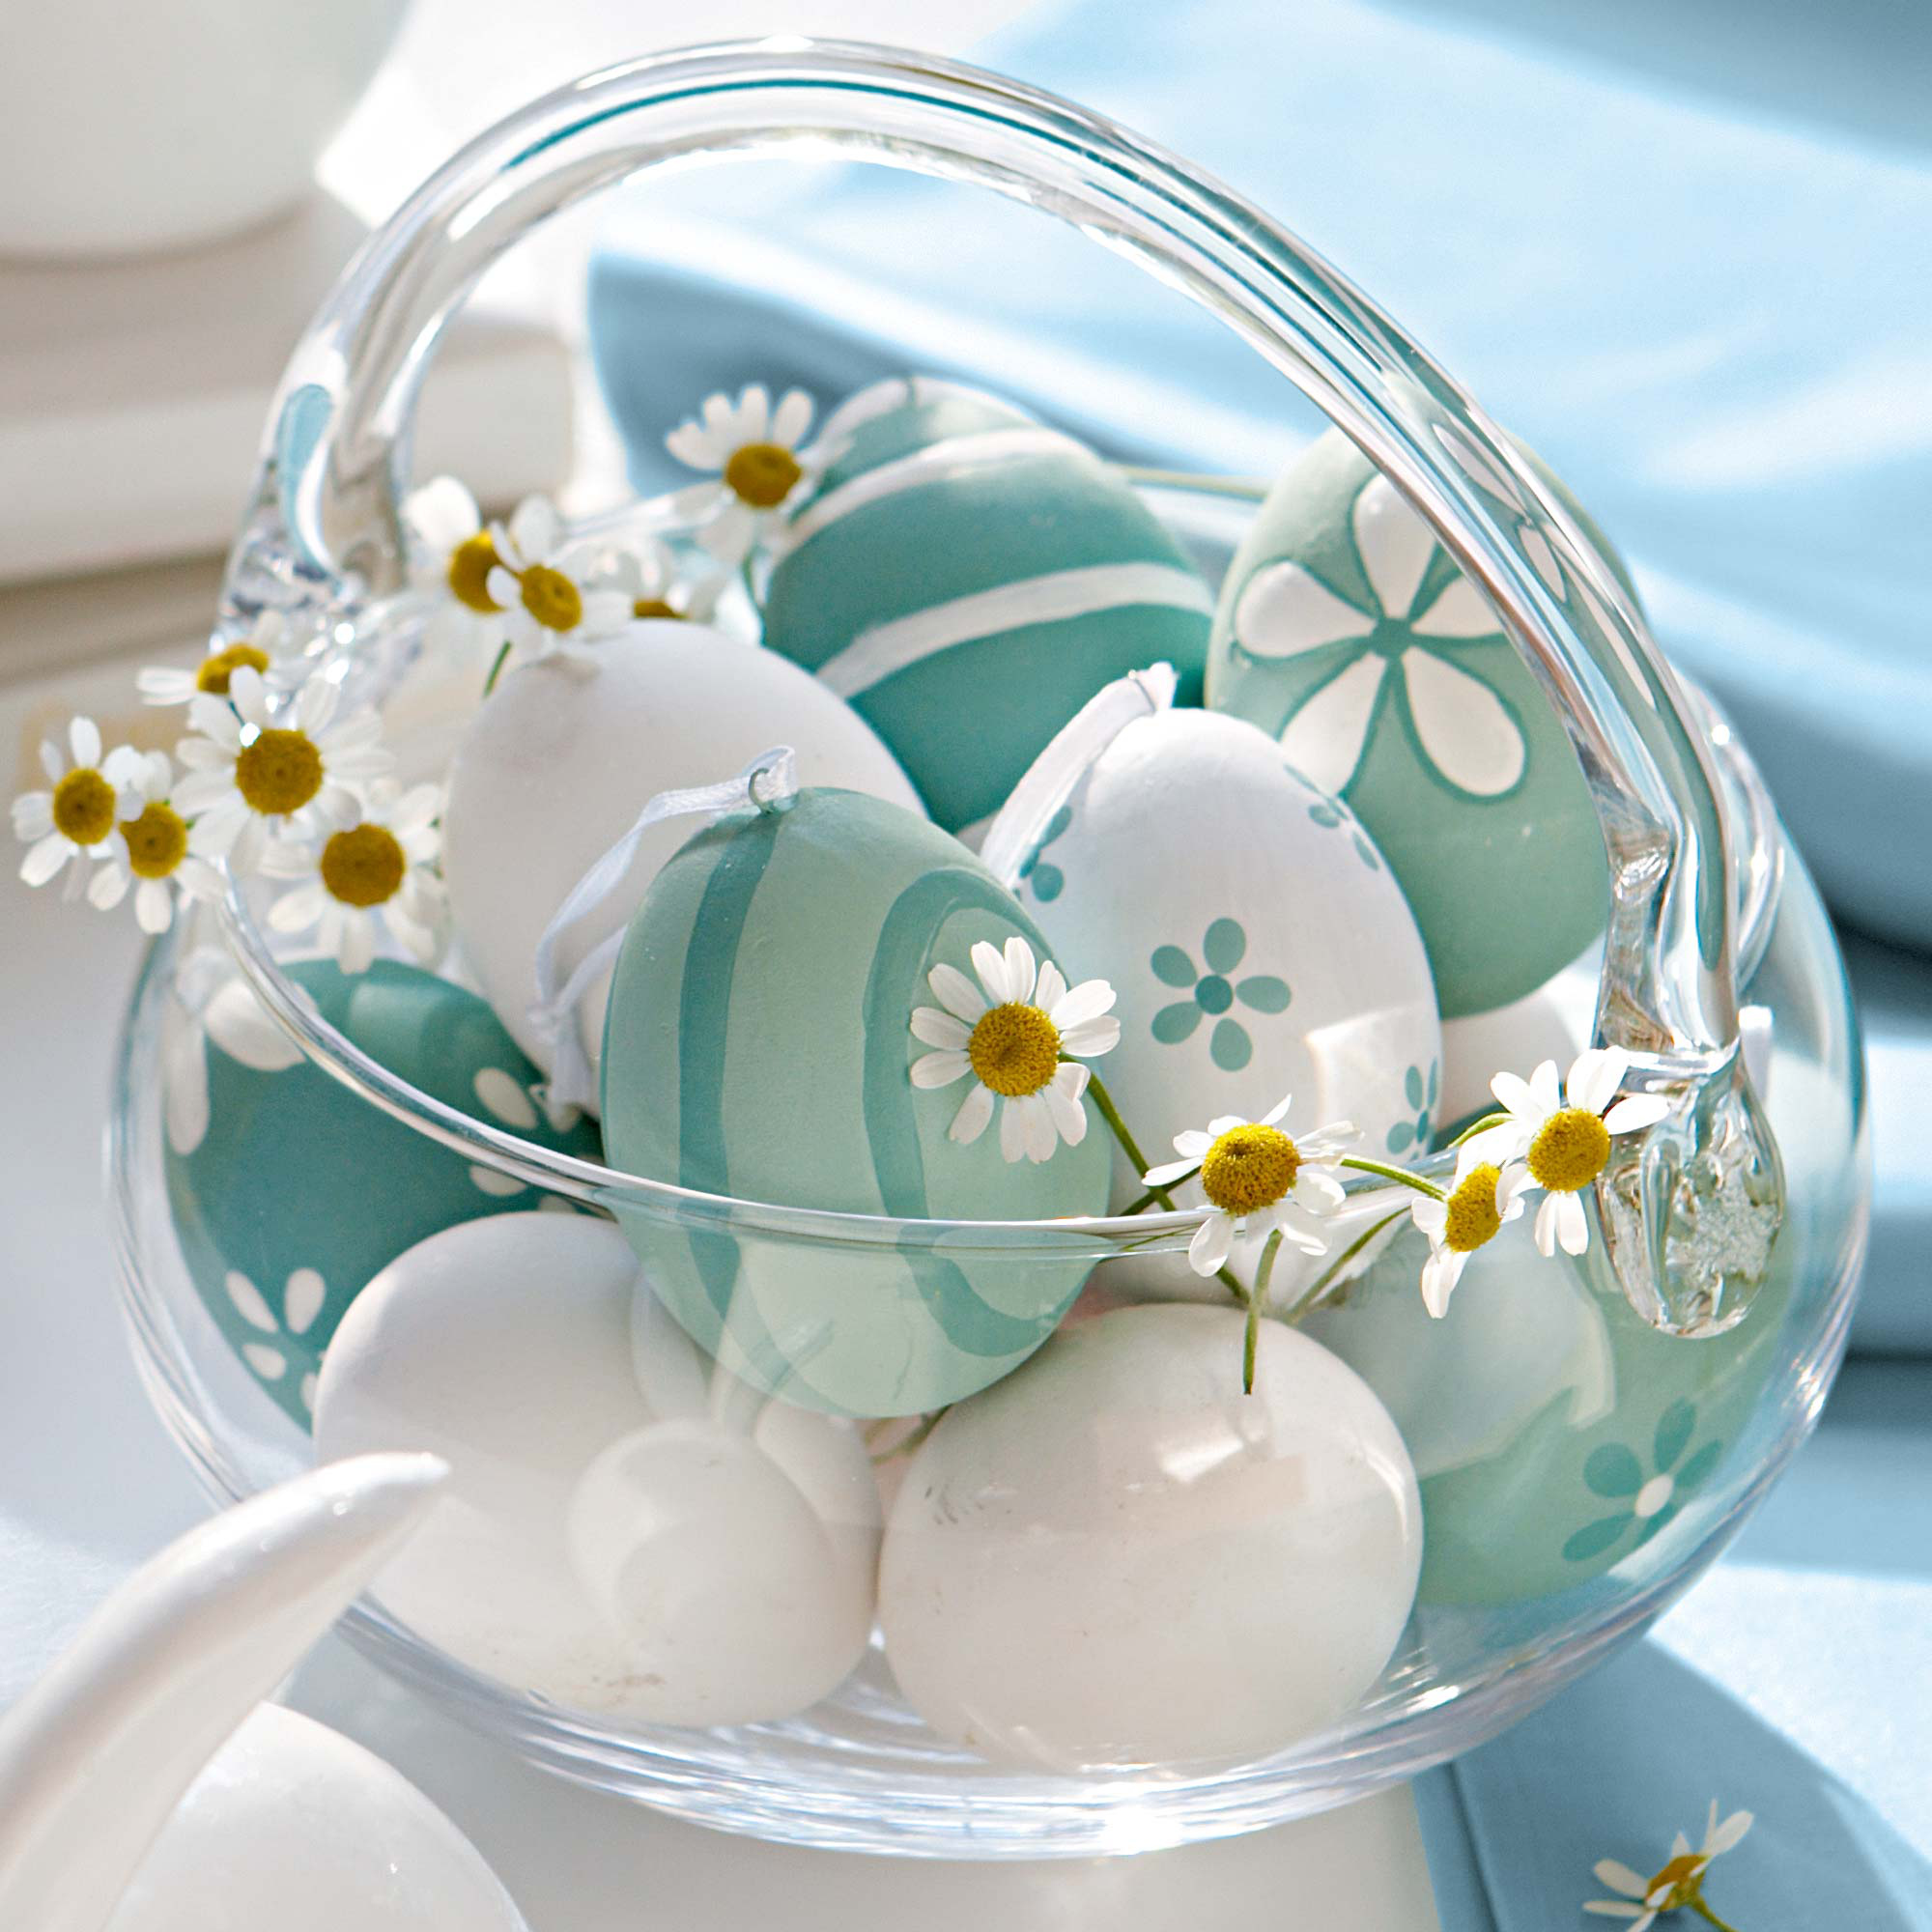 Easter Decorating Ideas - Home Bunch – Interior Design Ideas